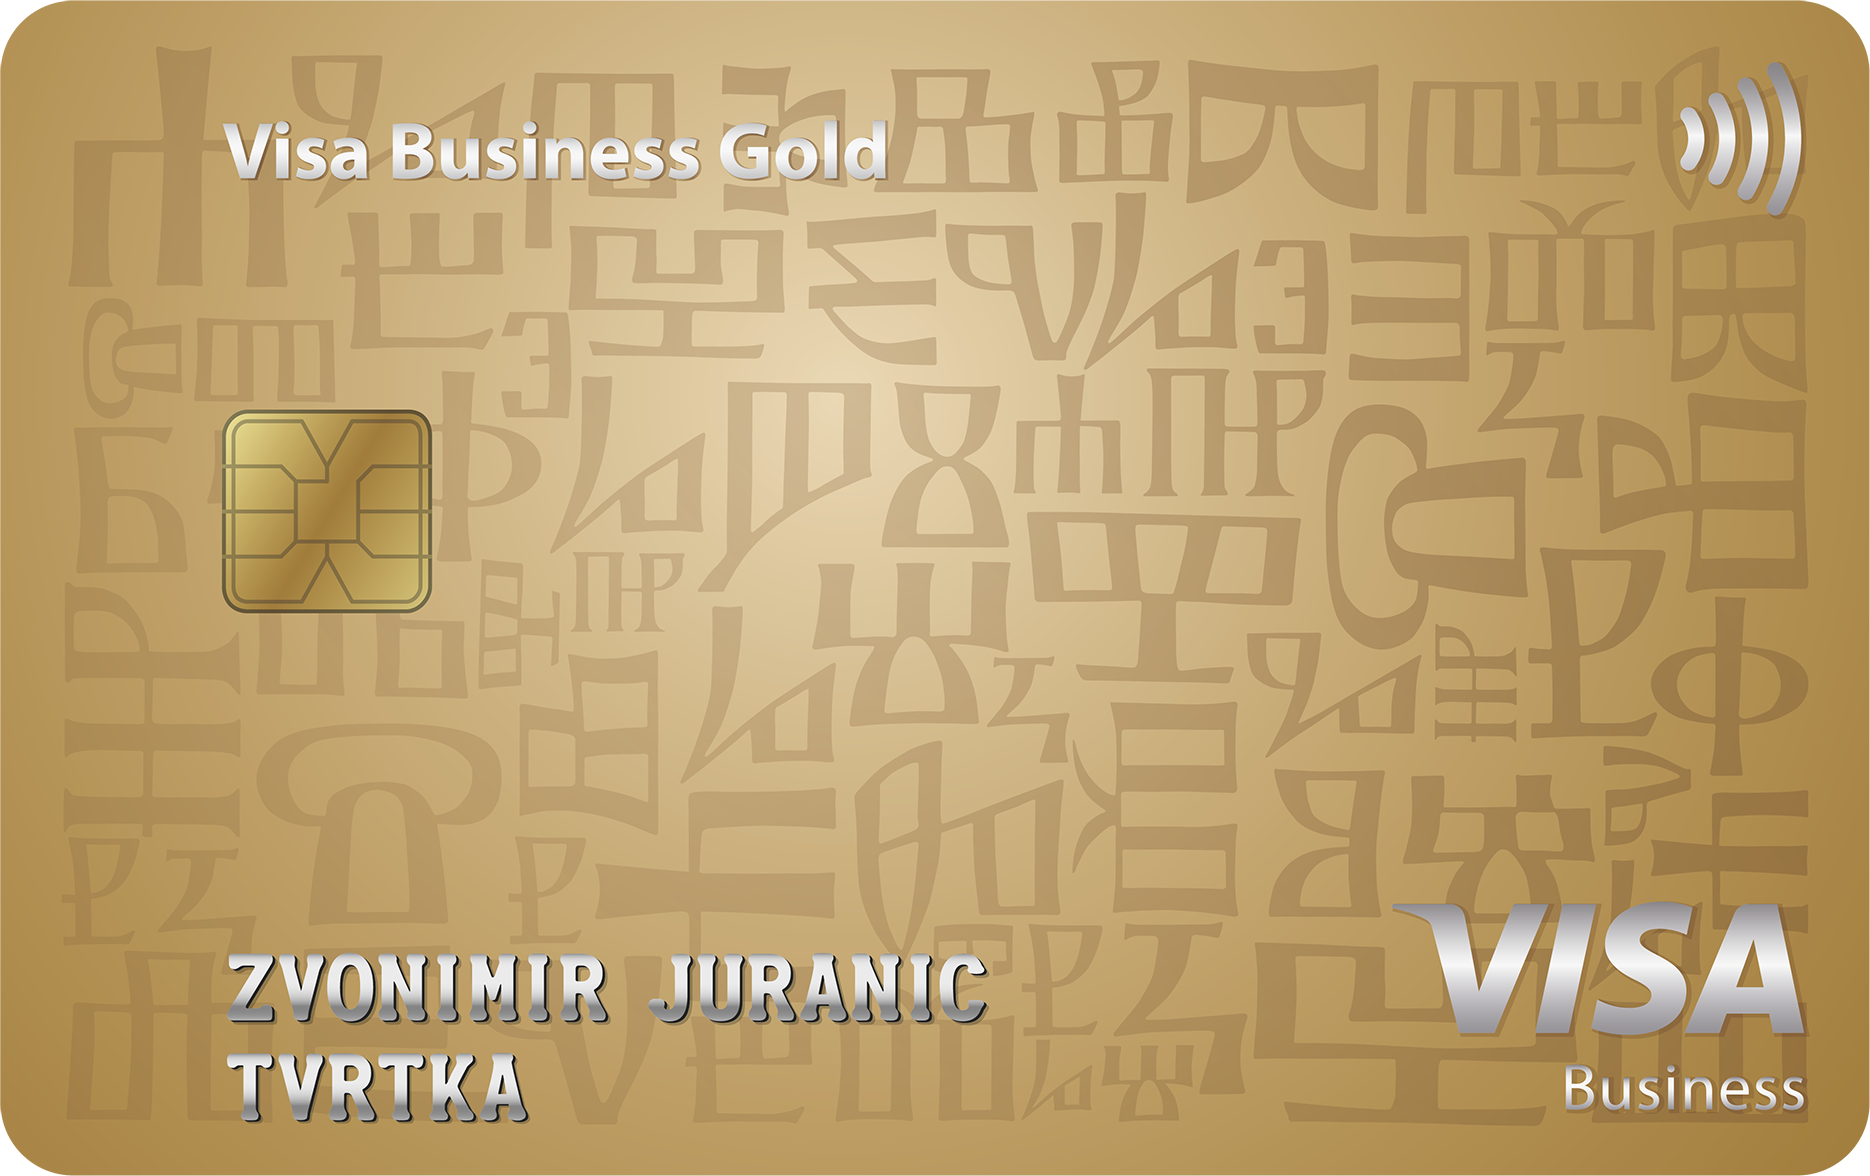 Visa Business Gold